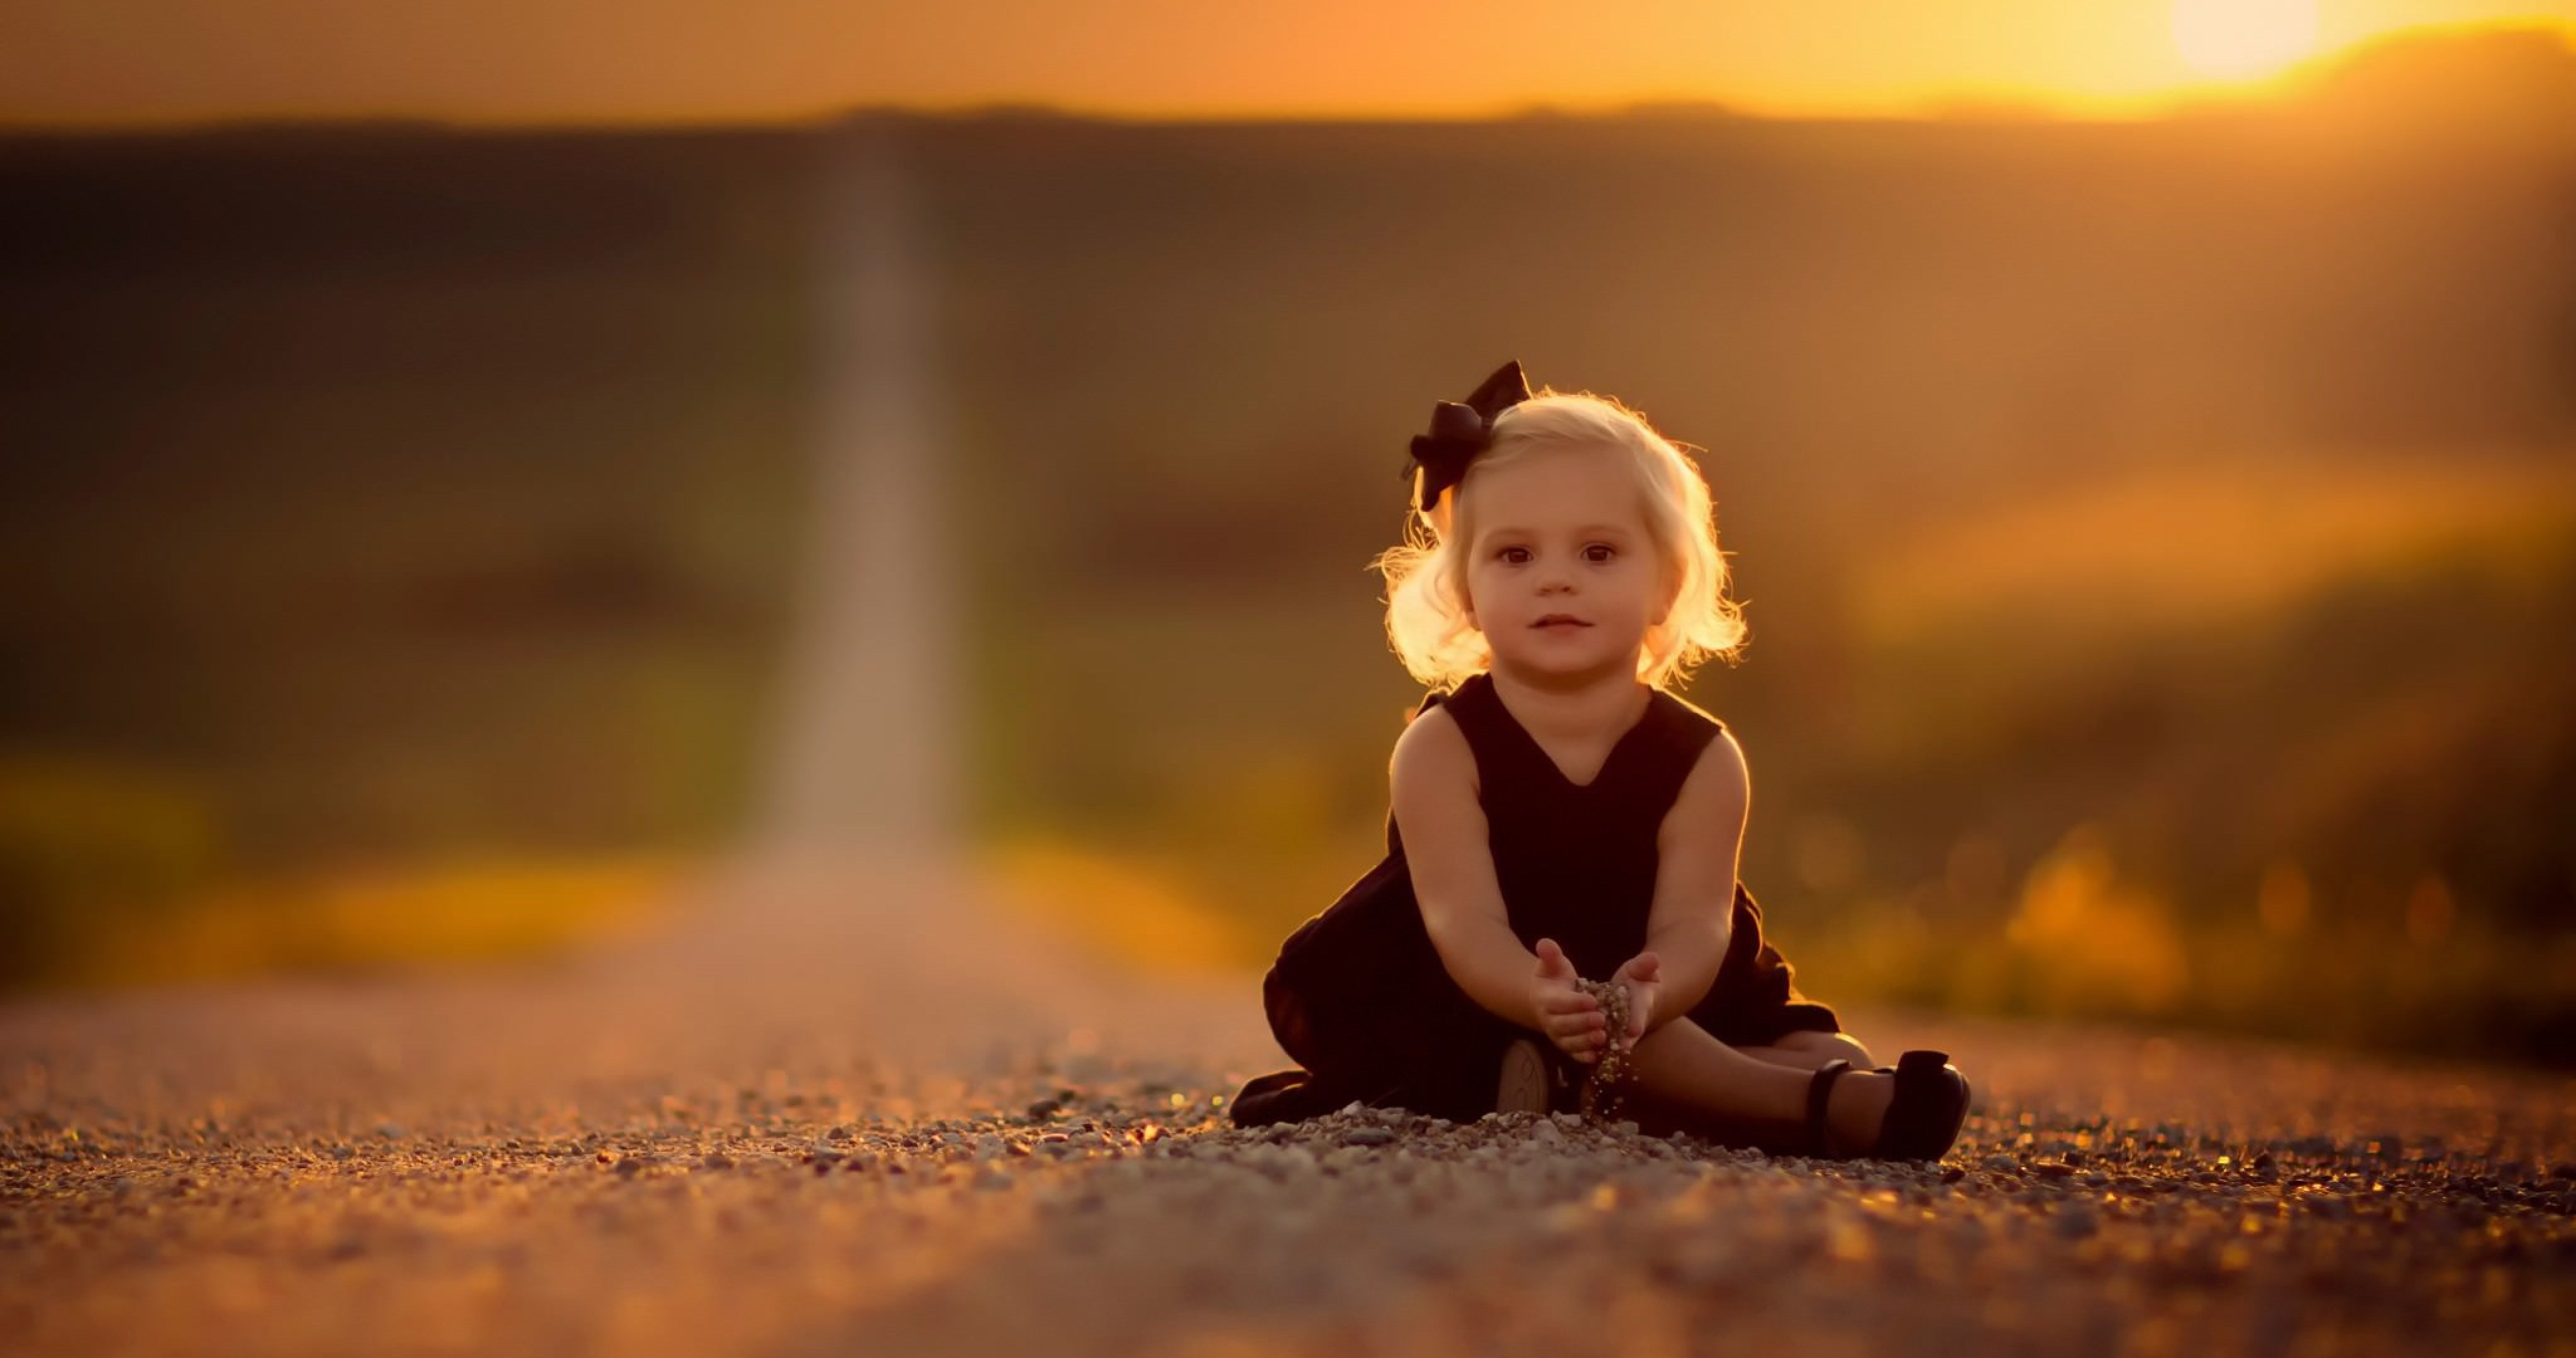 Jake Olson Photography , HD Wallpaper & Backgrounds